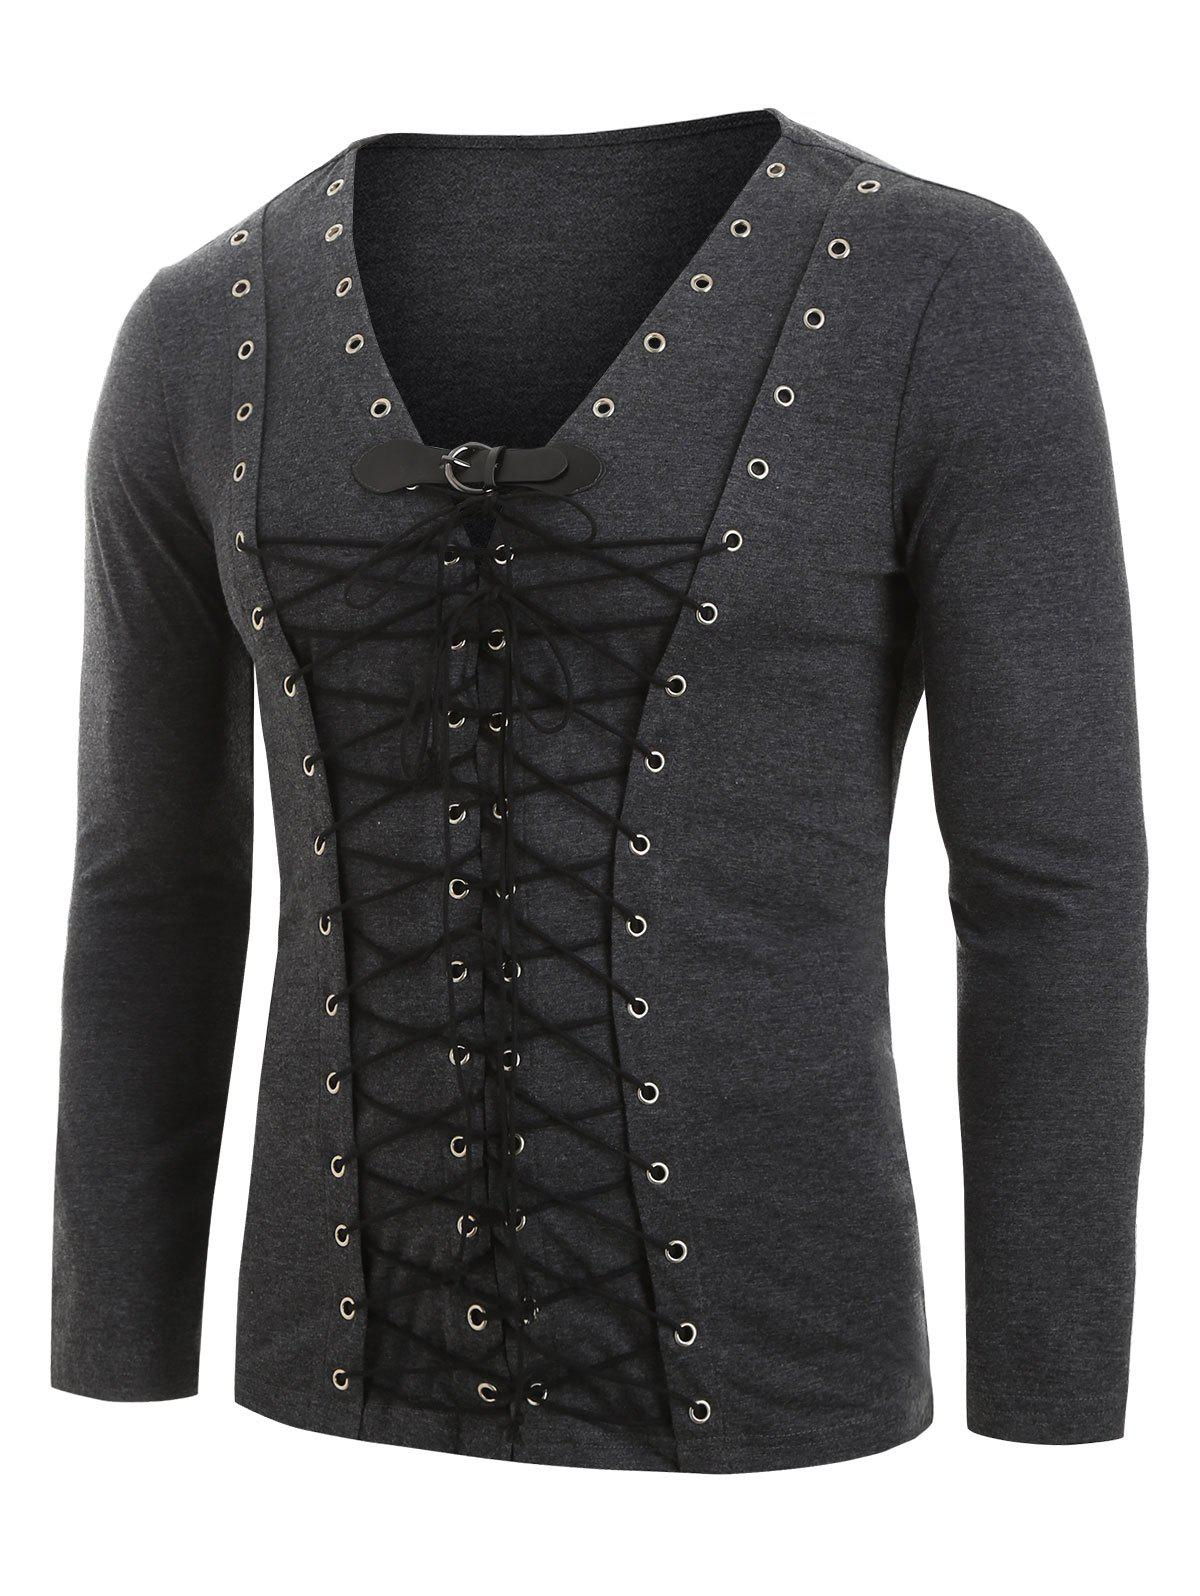 Discount Buckle Strap Lace-up Front Long Sleeve Heathered T-shirt